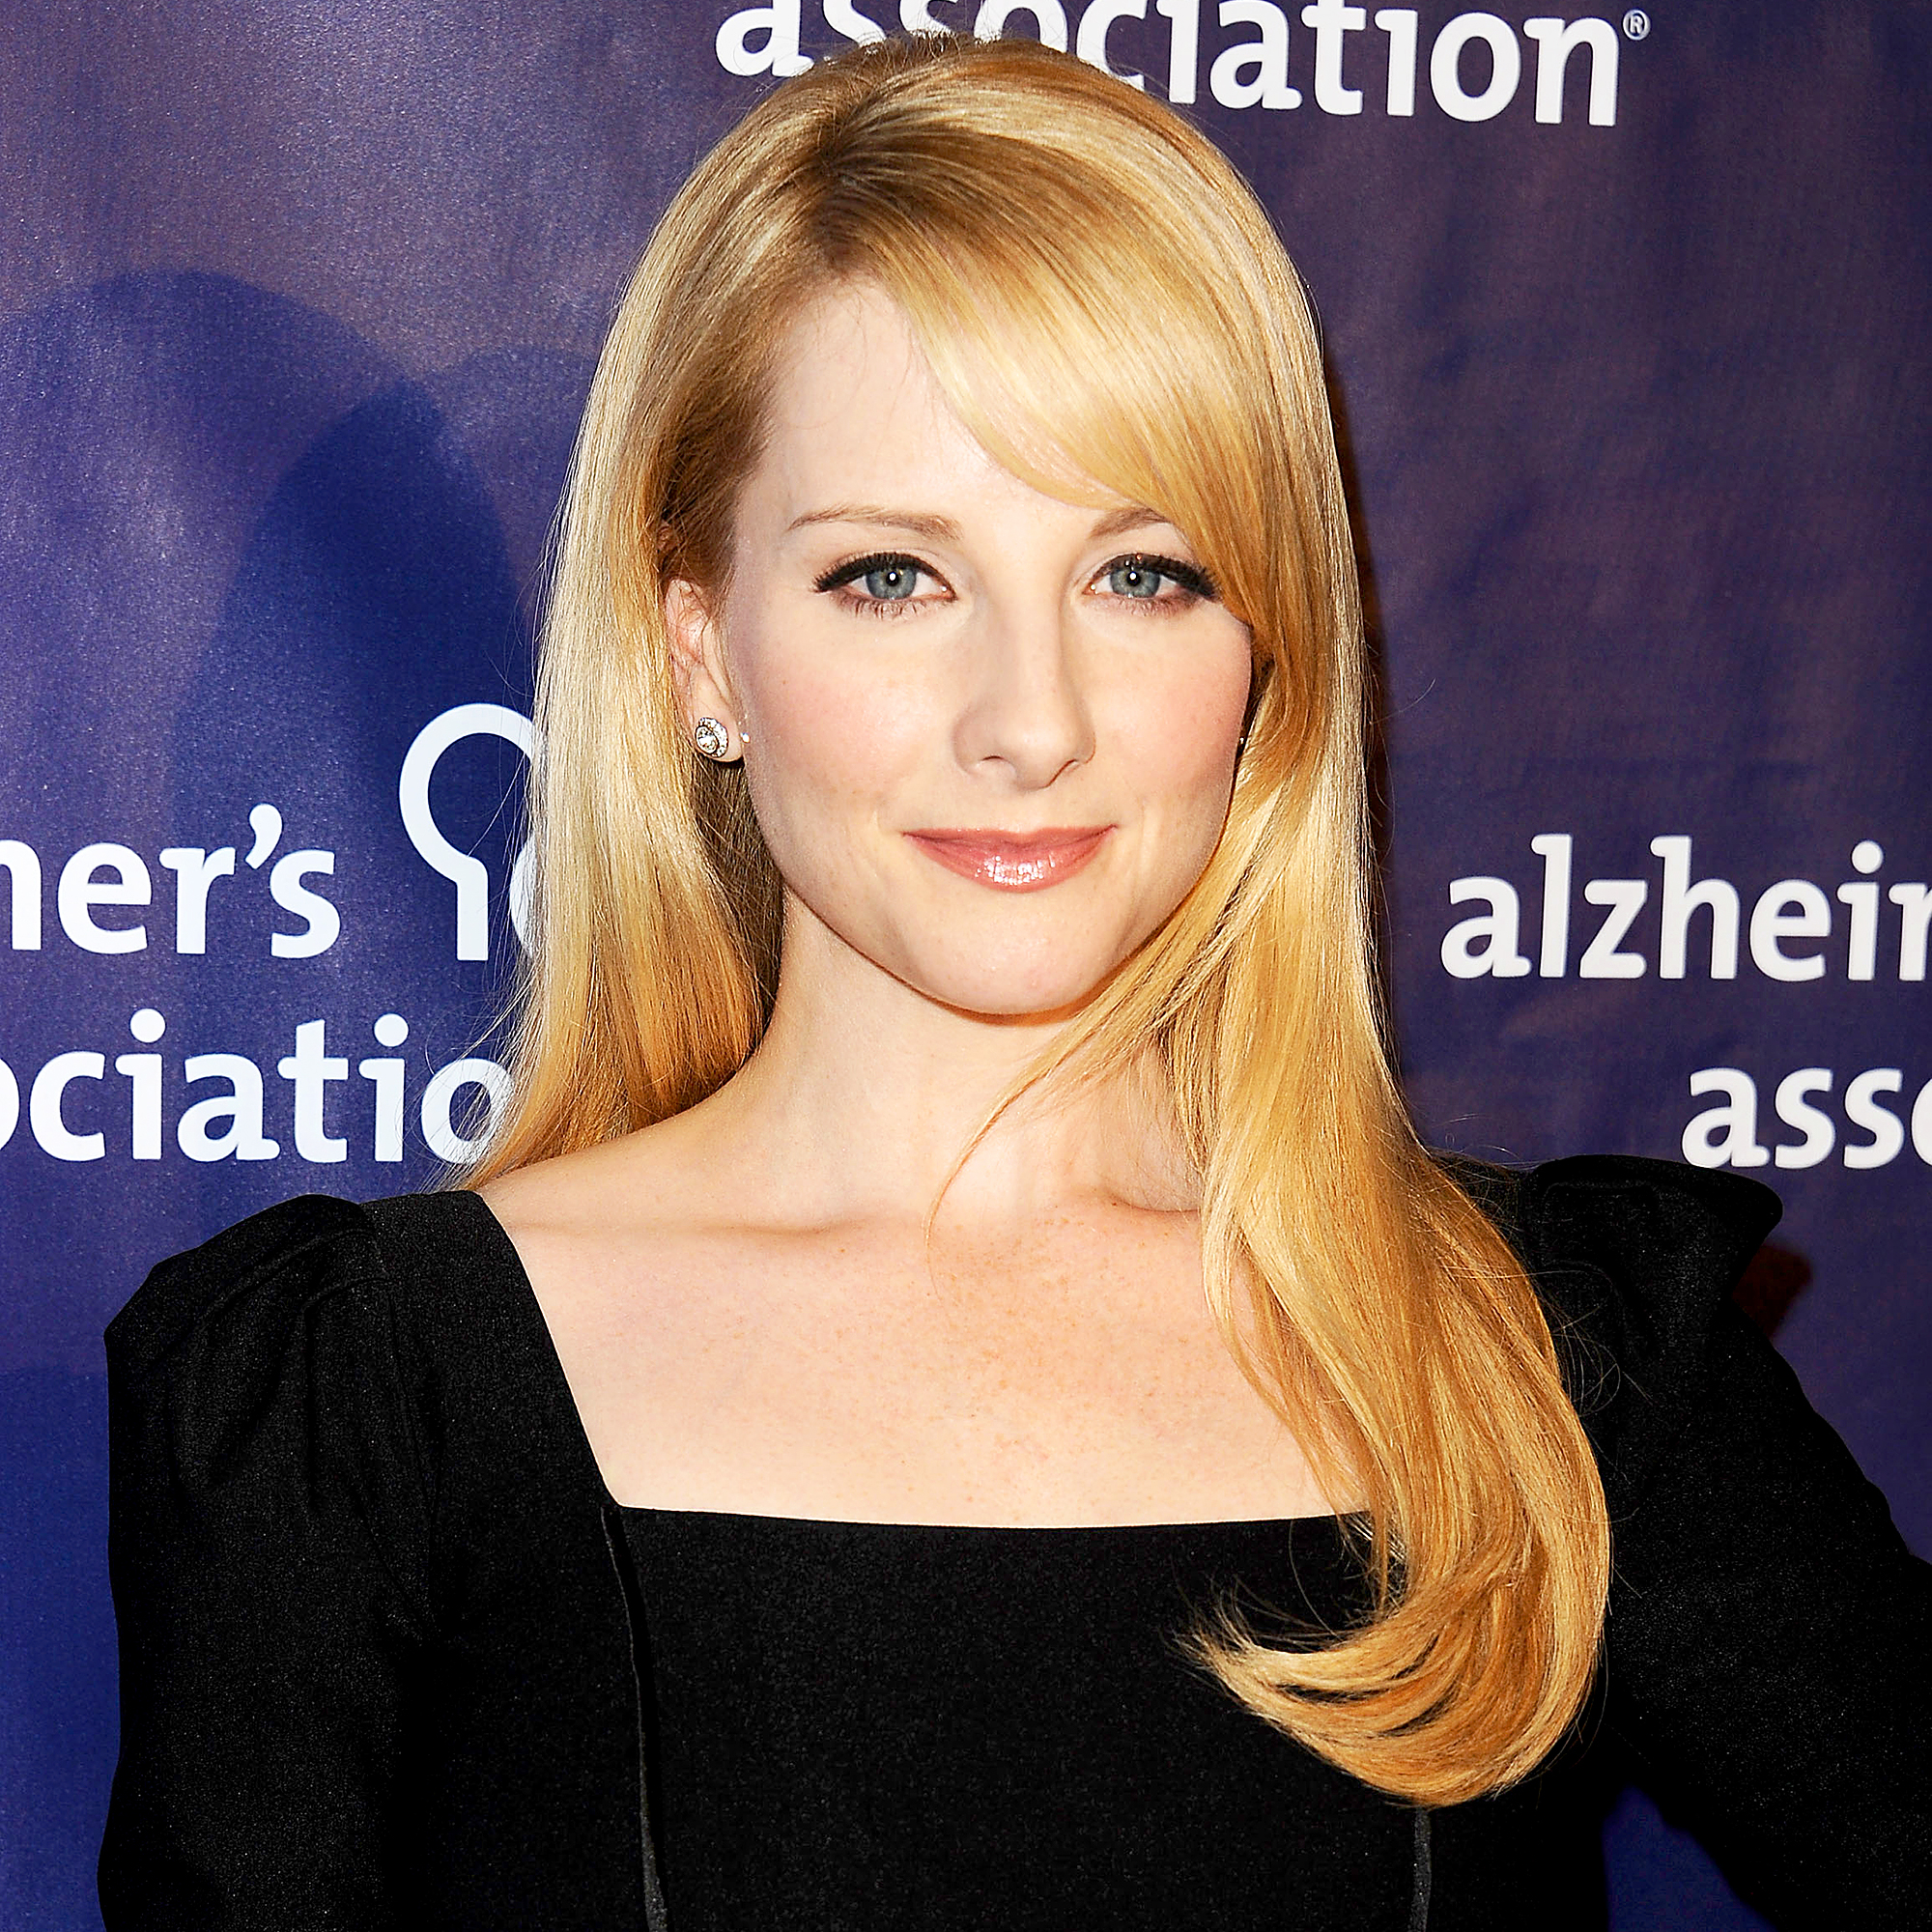 big bang theory' star melissa rauch is pregnant after suffering